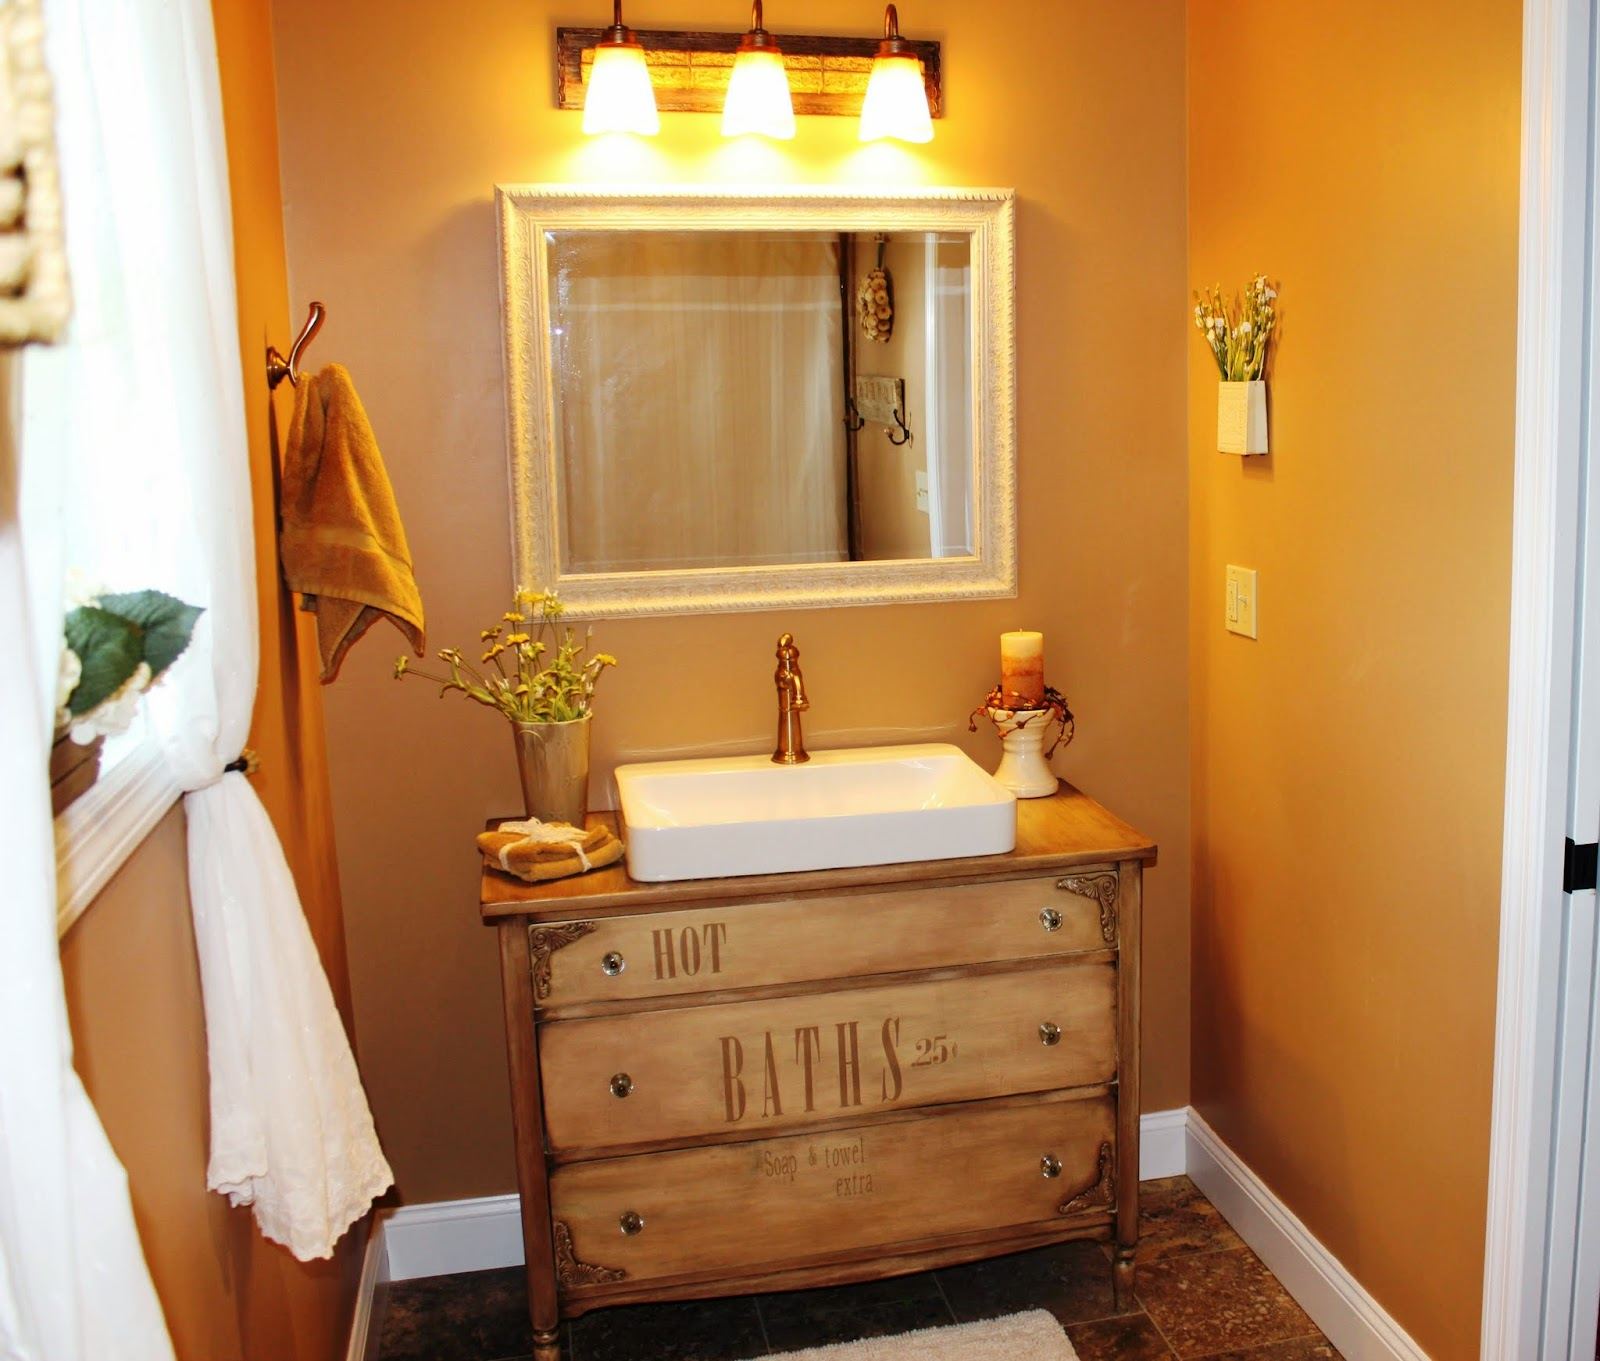 Fern Avenue: Turning a dresser into a Vanity for the bathroom